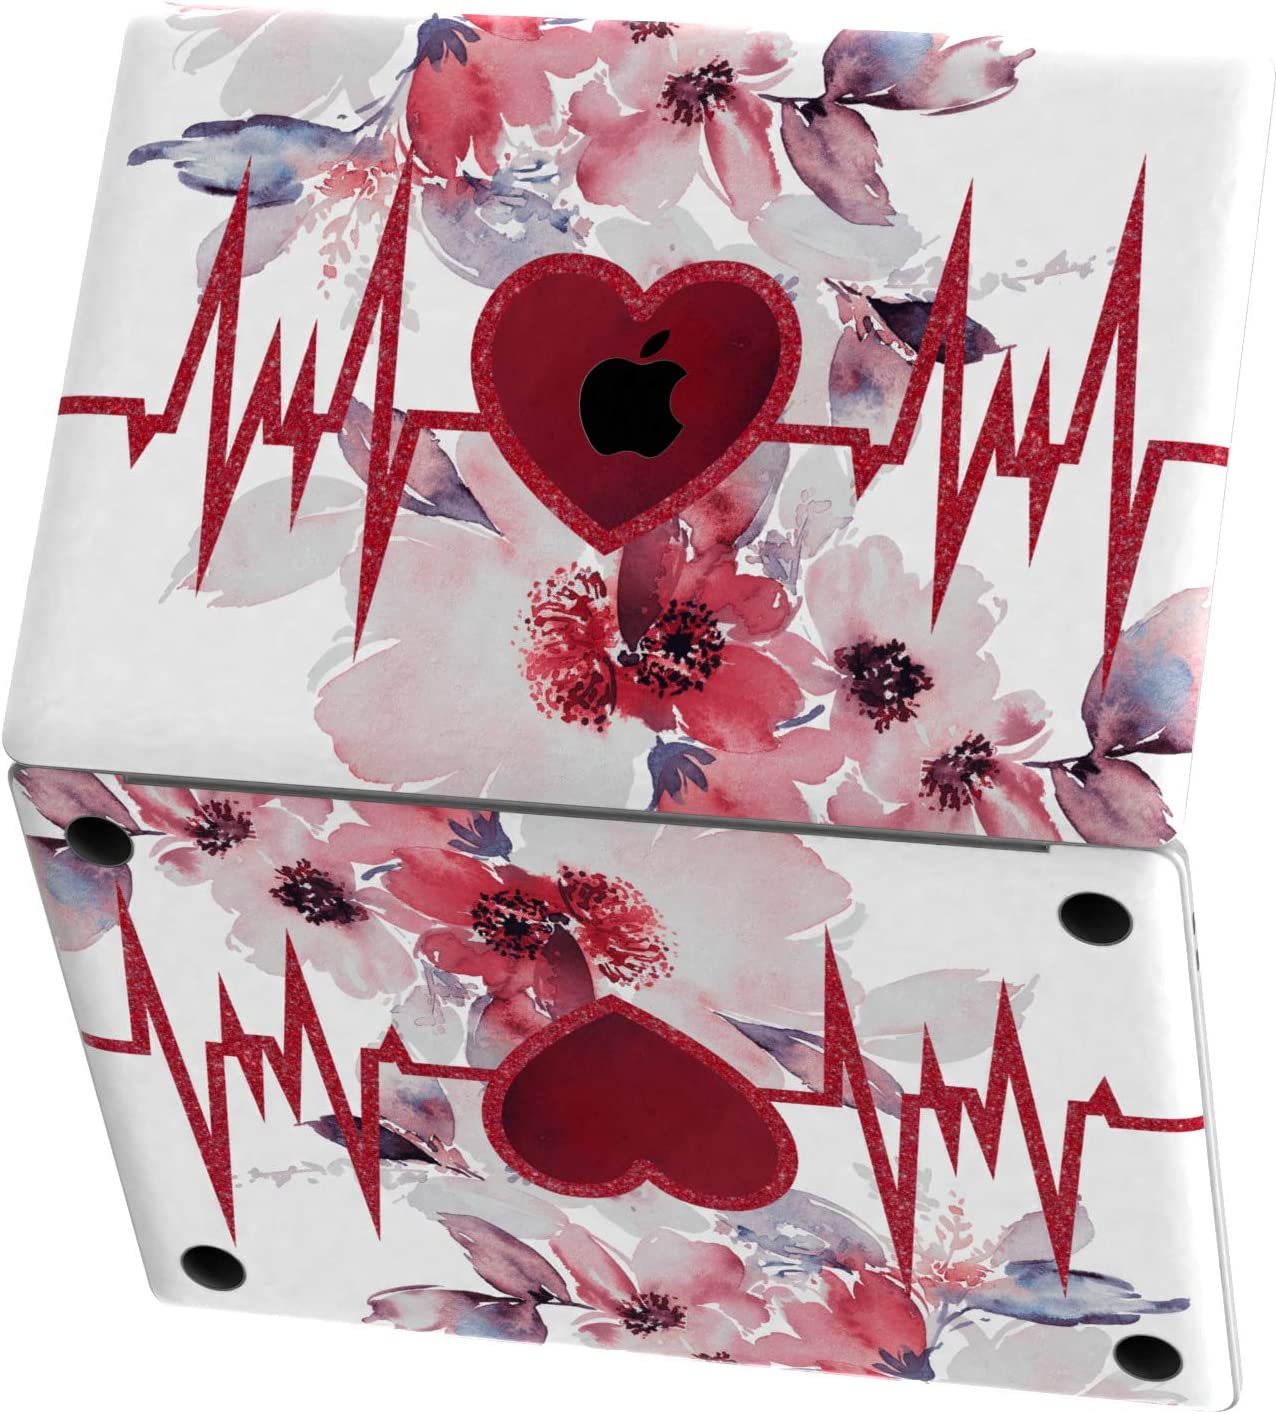 Mertak Vinyl Skin for Apple MacBook Air 13 inch Mac Pro 16 15 Retina 12 11 2020 2019 2018 2017 Nurse Keyboard Decal Doctor Top Design Cute Wrap Heartbeat Clear Sticker Touch Bar Floral Print Flowers